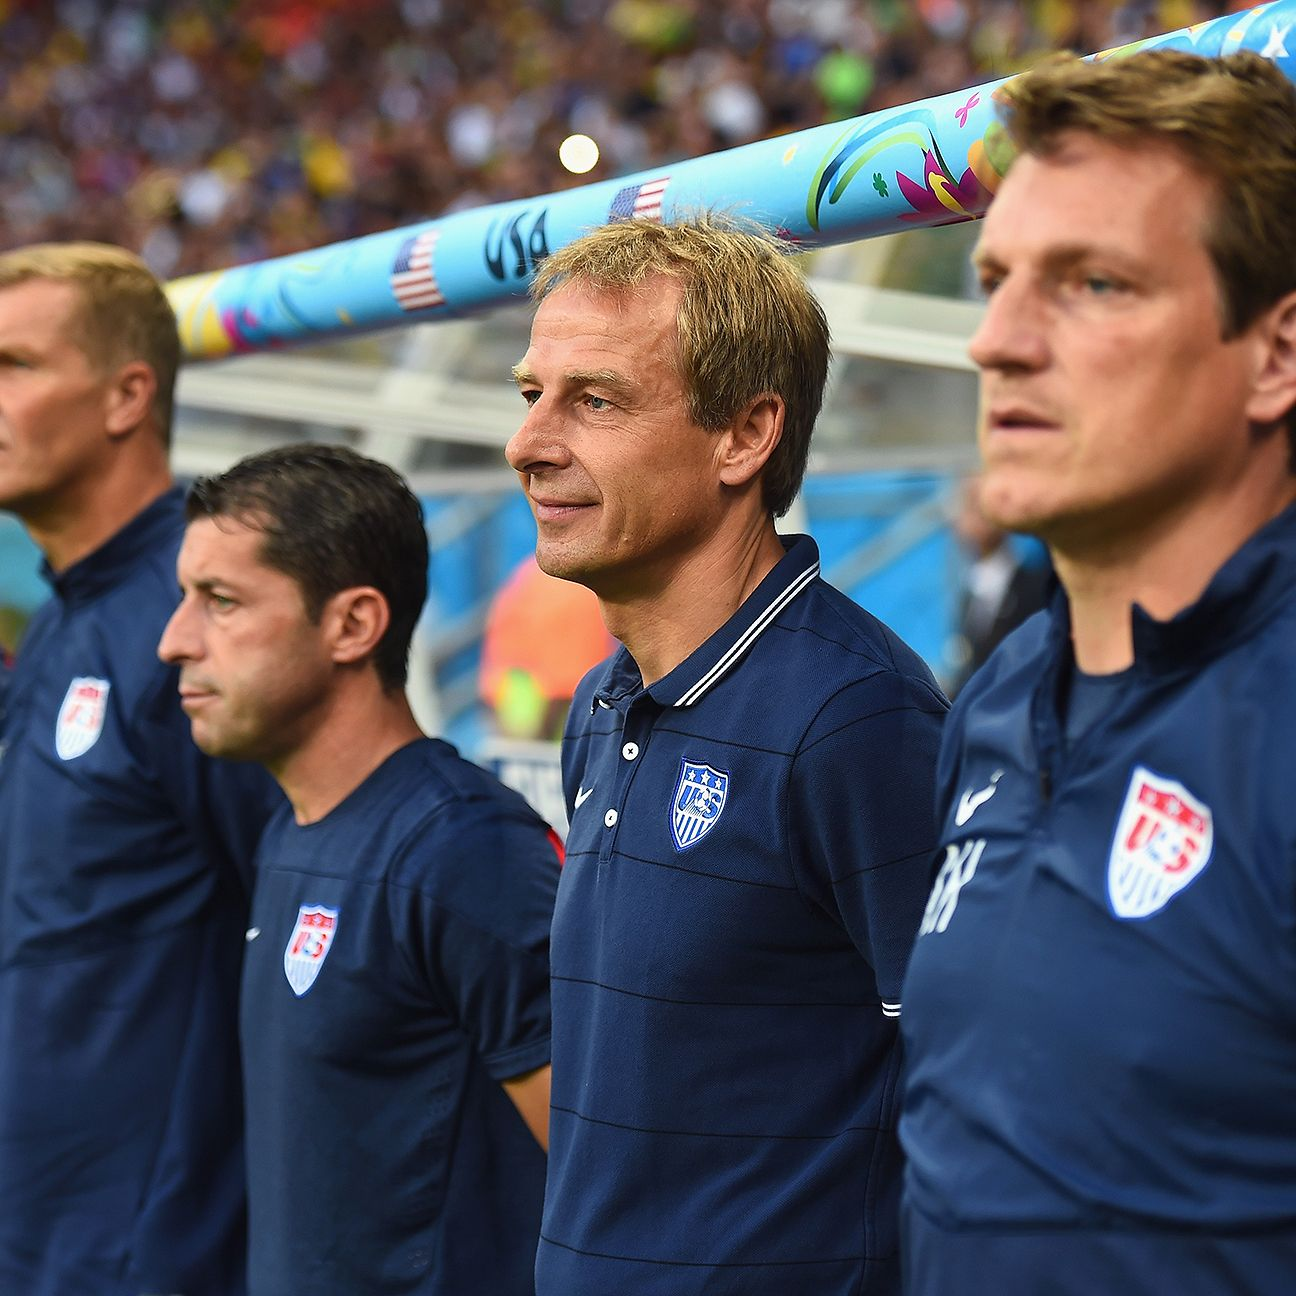 Klinsmann's biggest legacy to U.S. soccer will likely be found off the field, away from the USMNT.